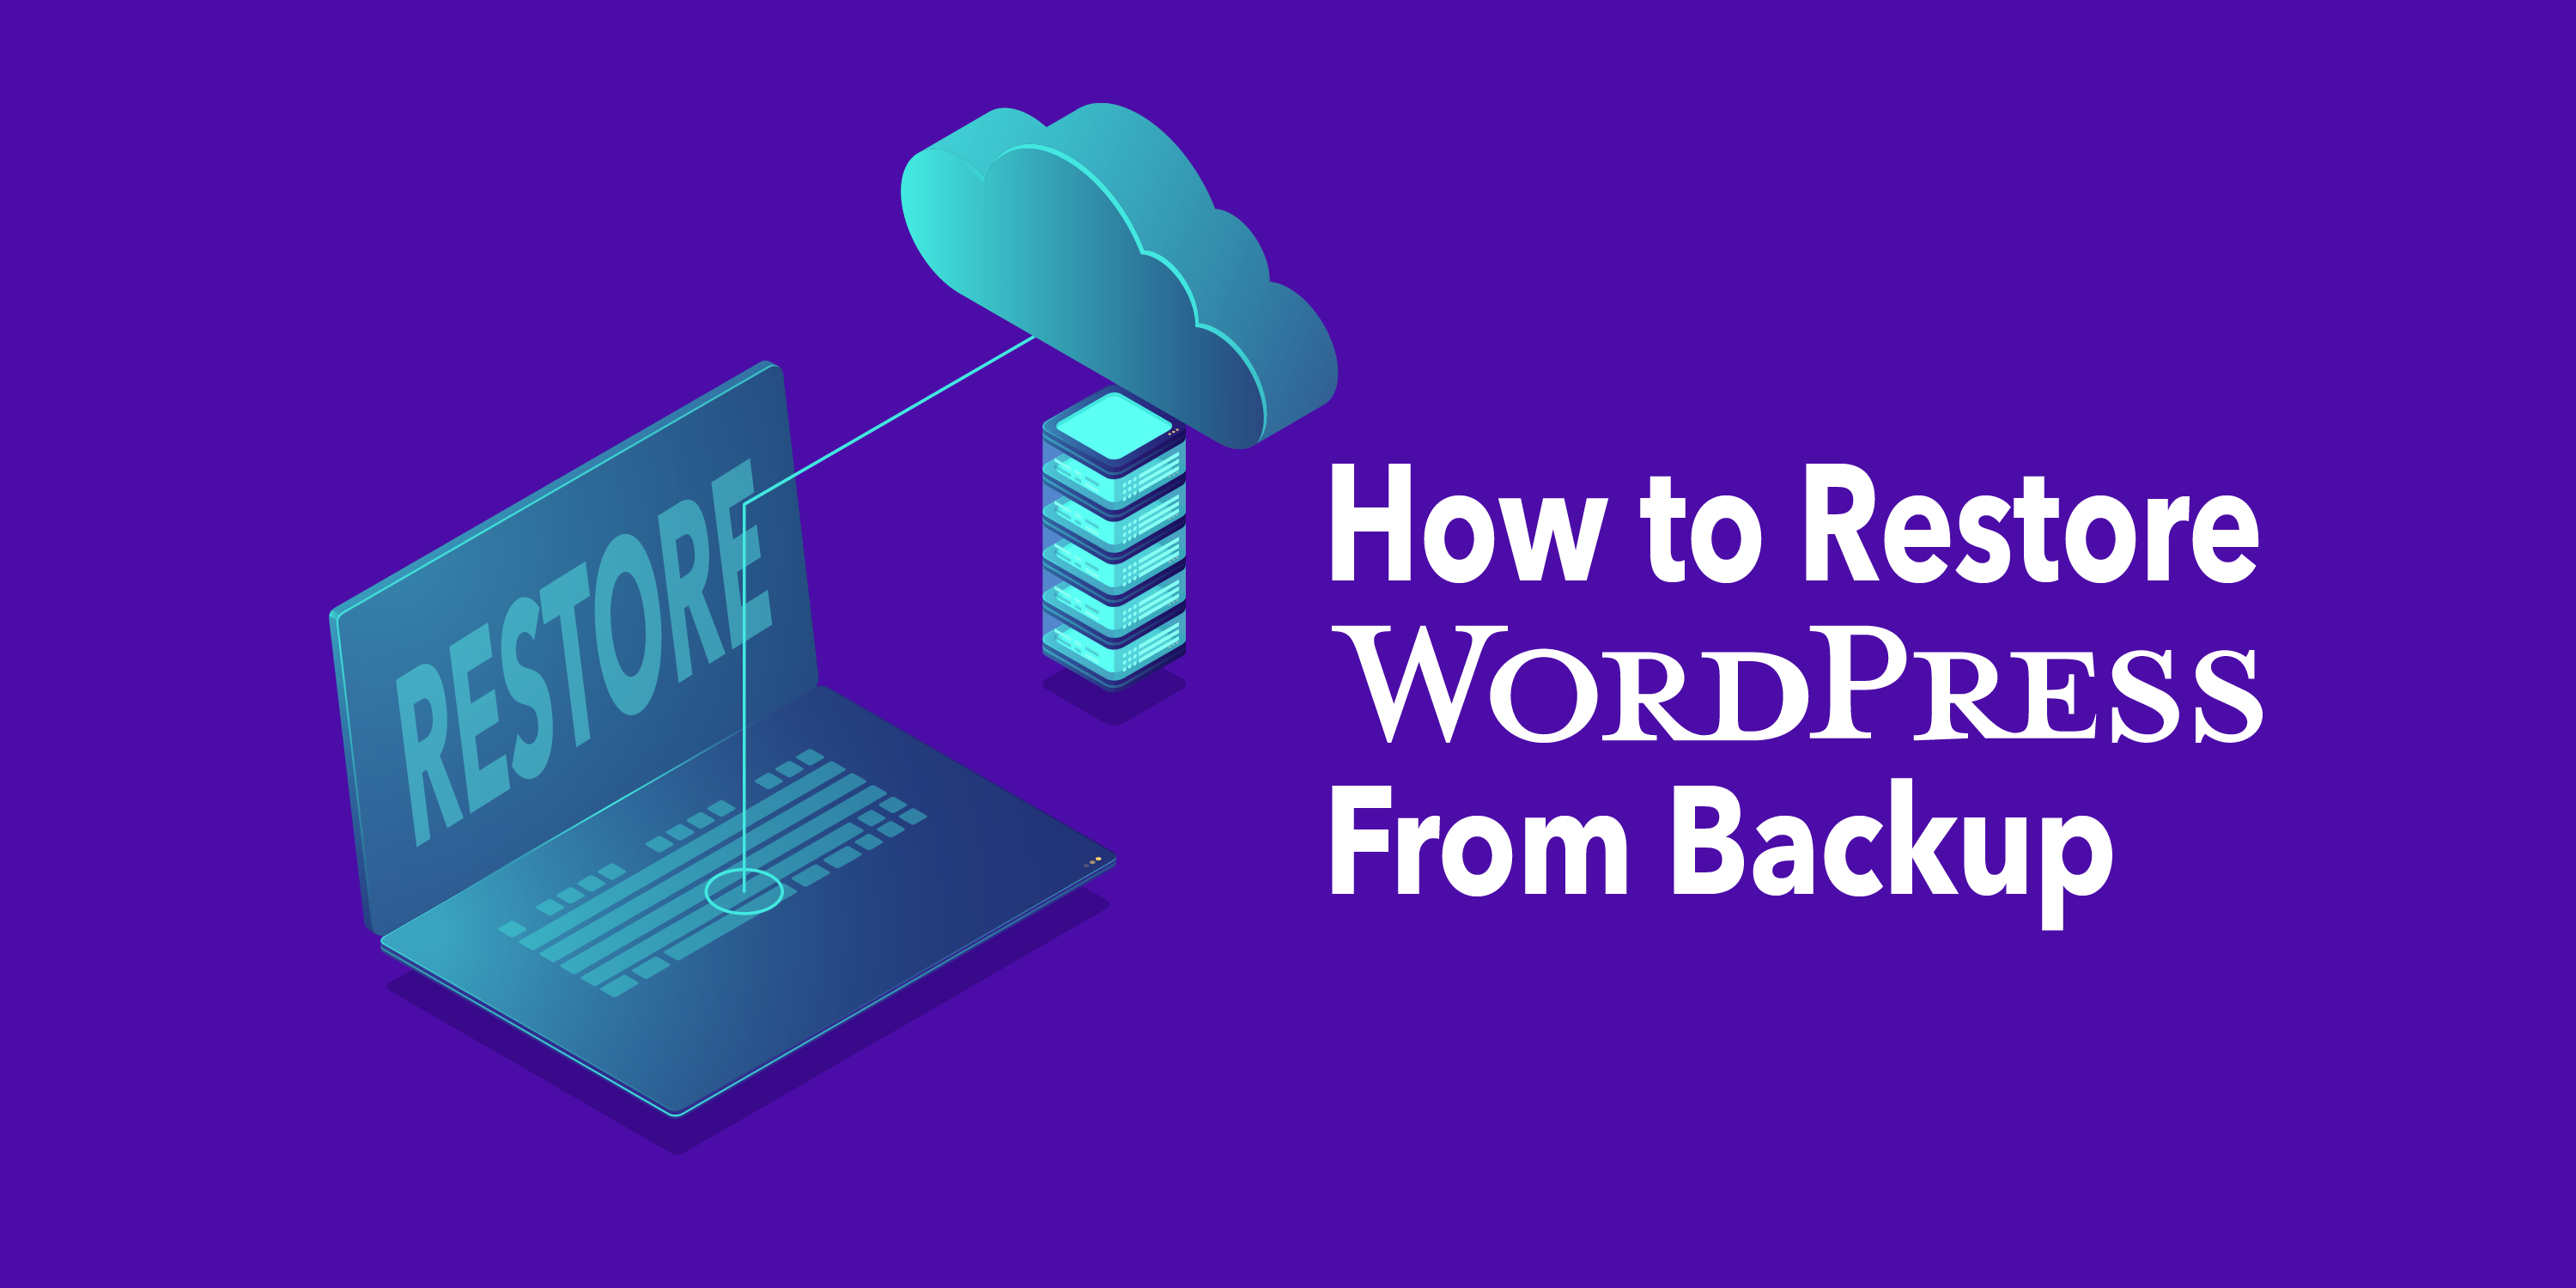 Restoring WordPress from a Backup